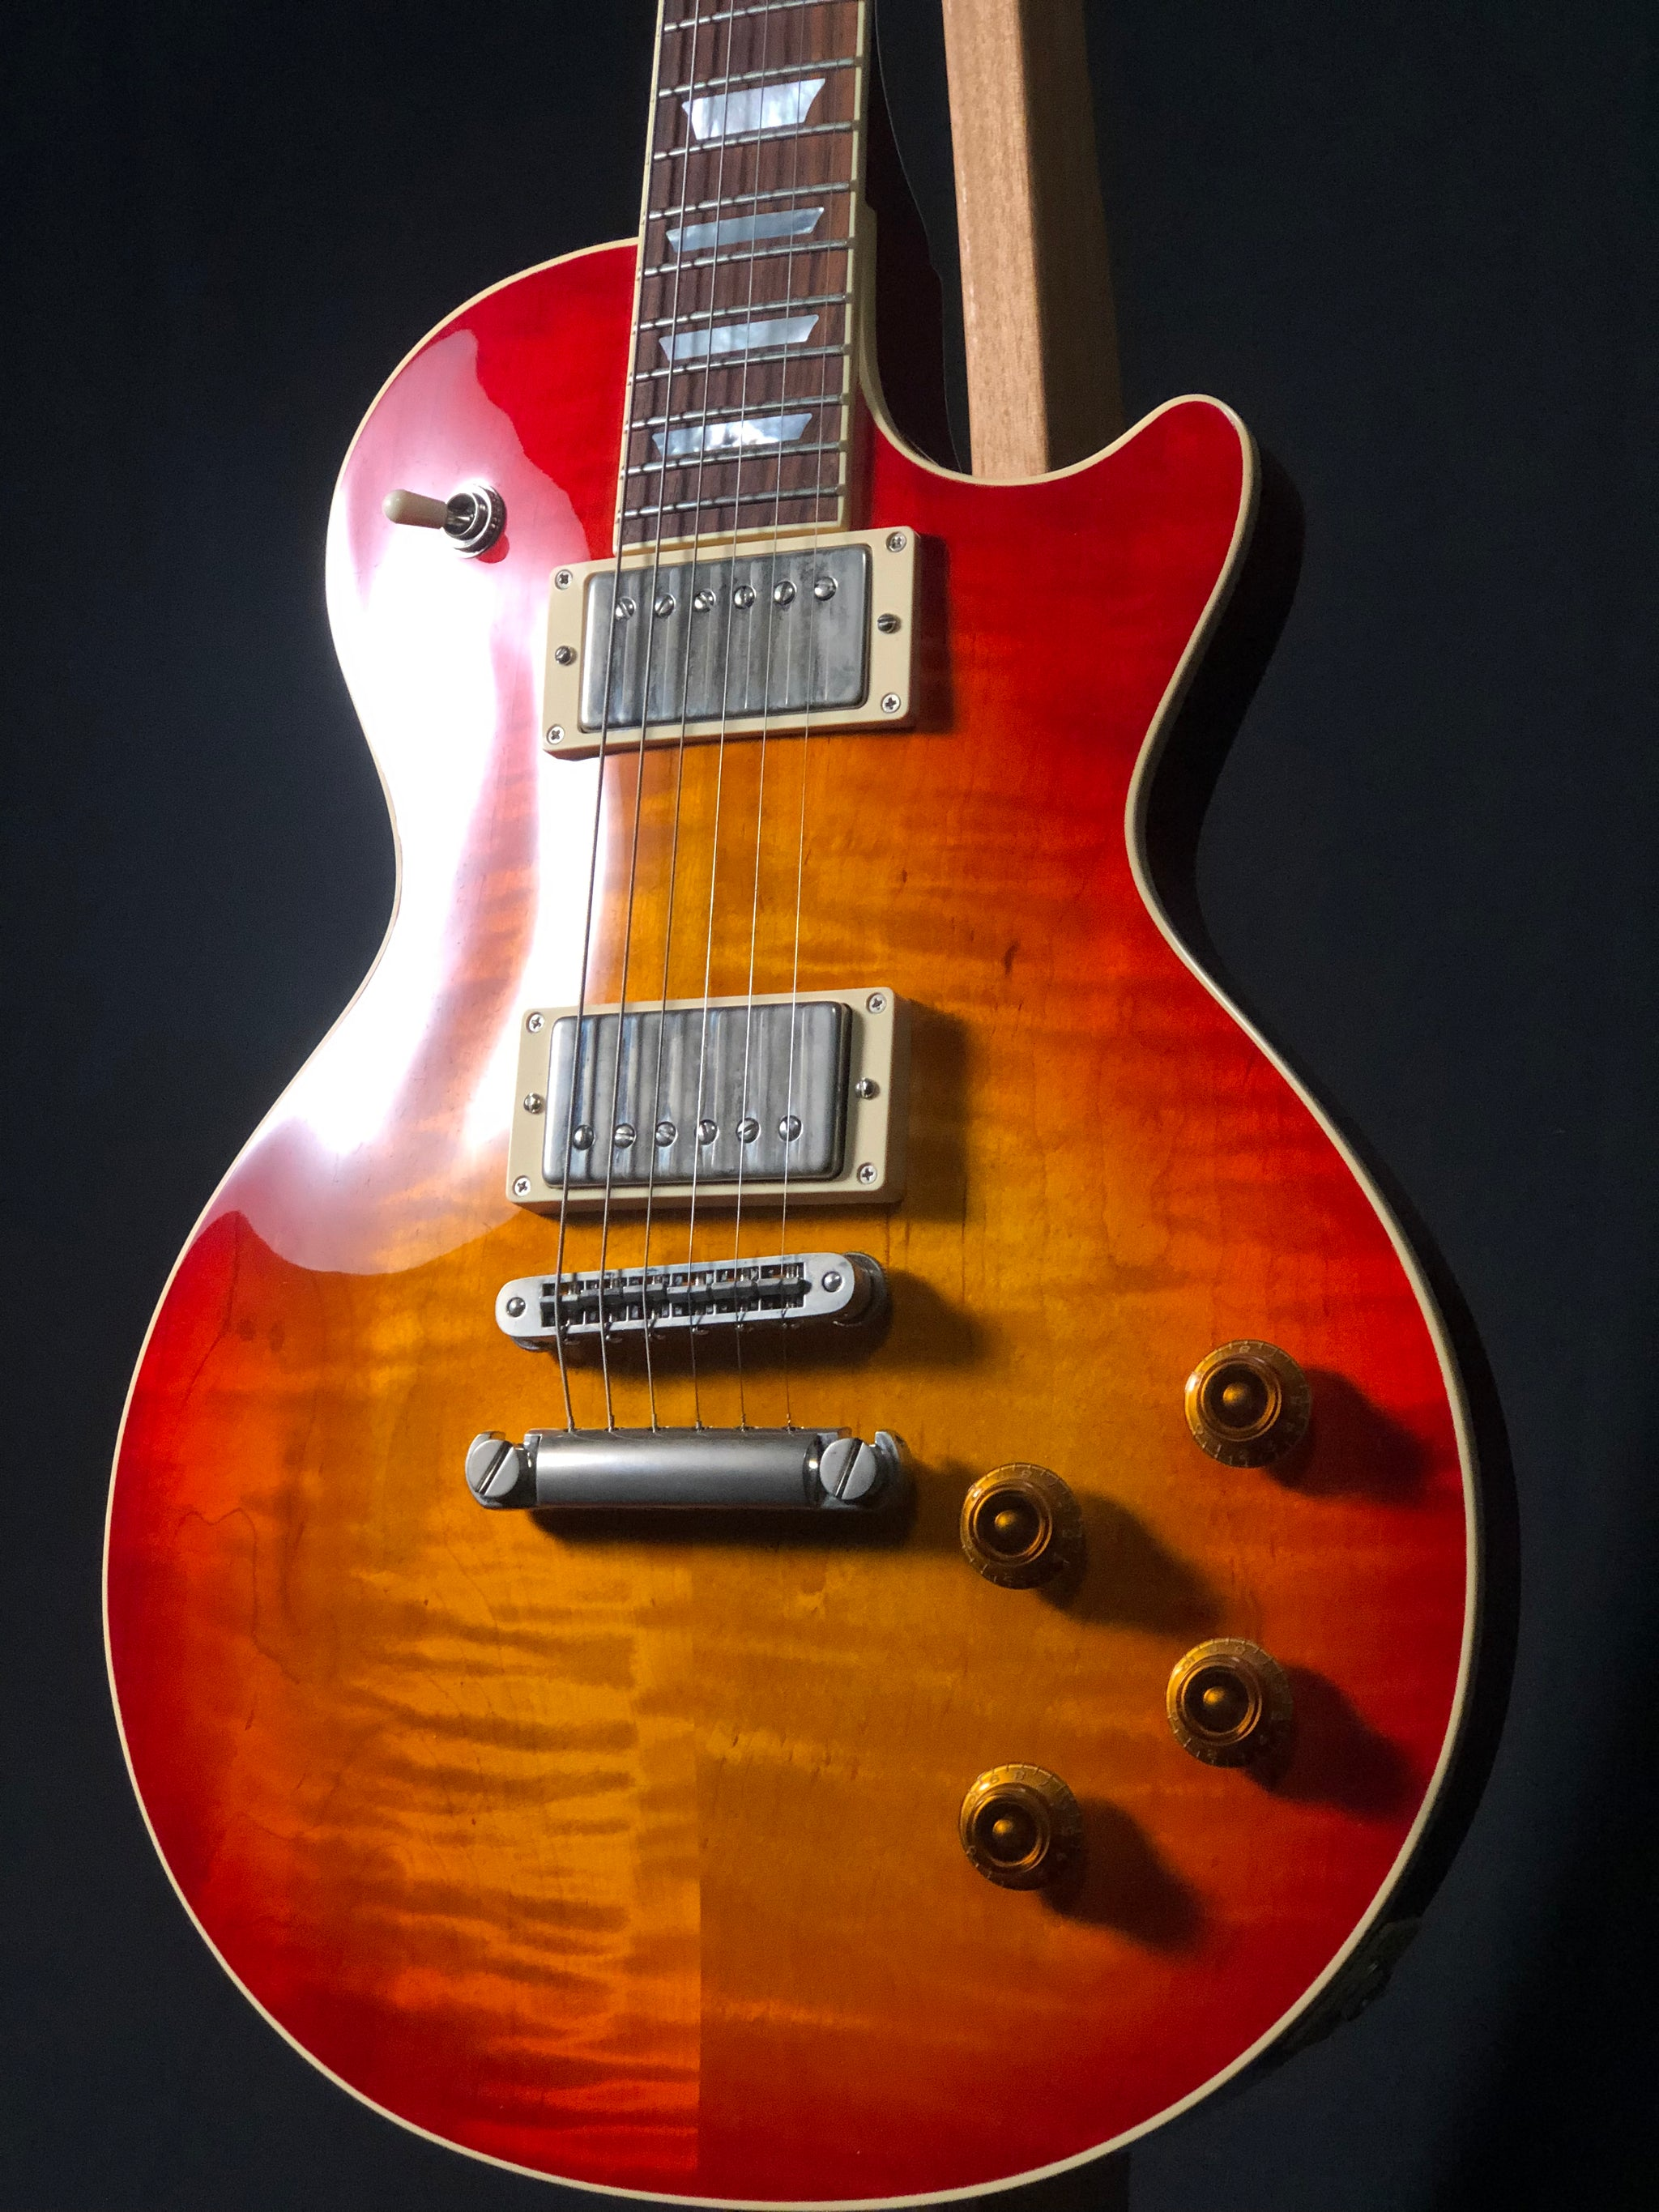 H150 Antique Cherry Sunburst